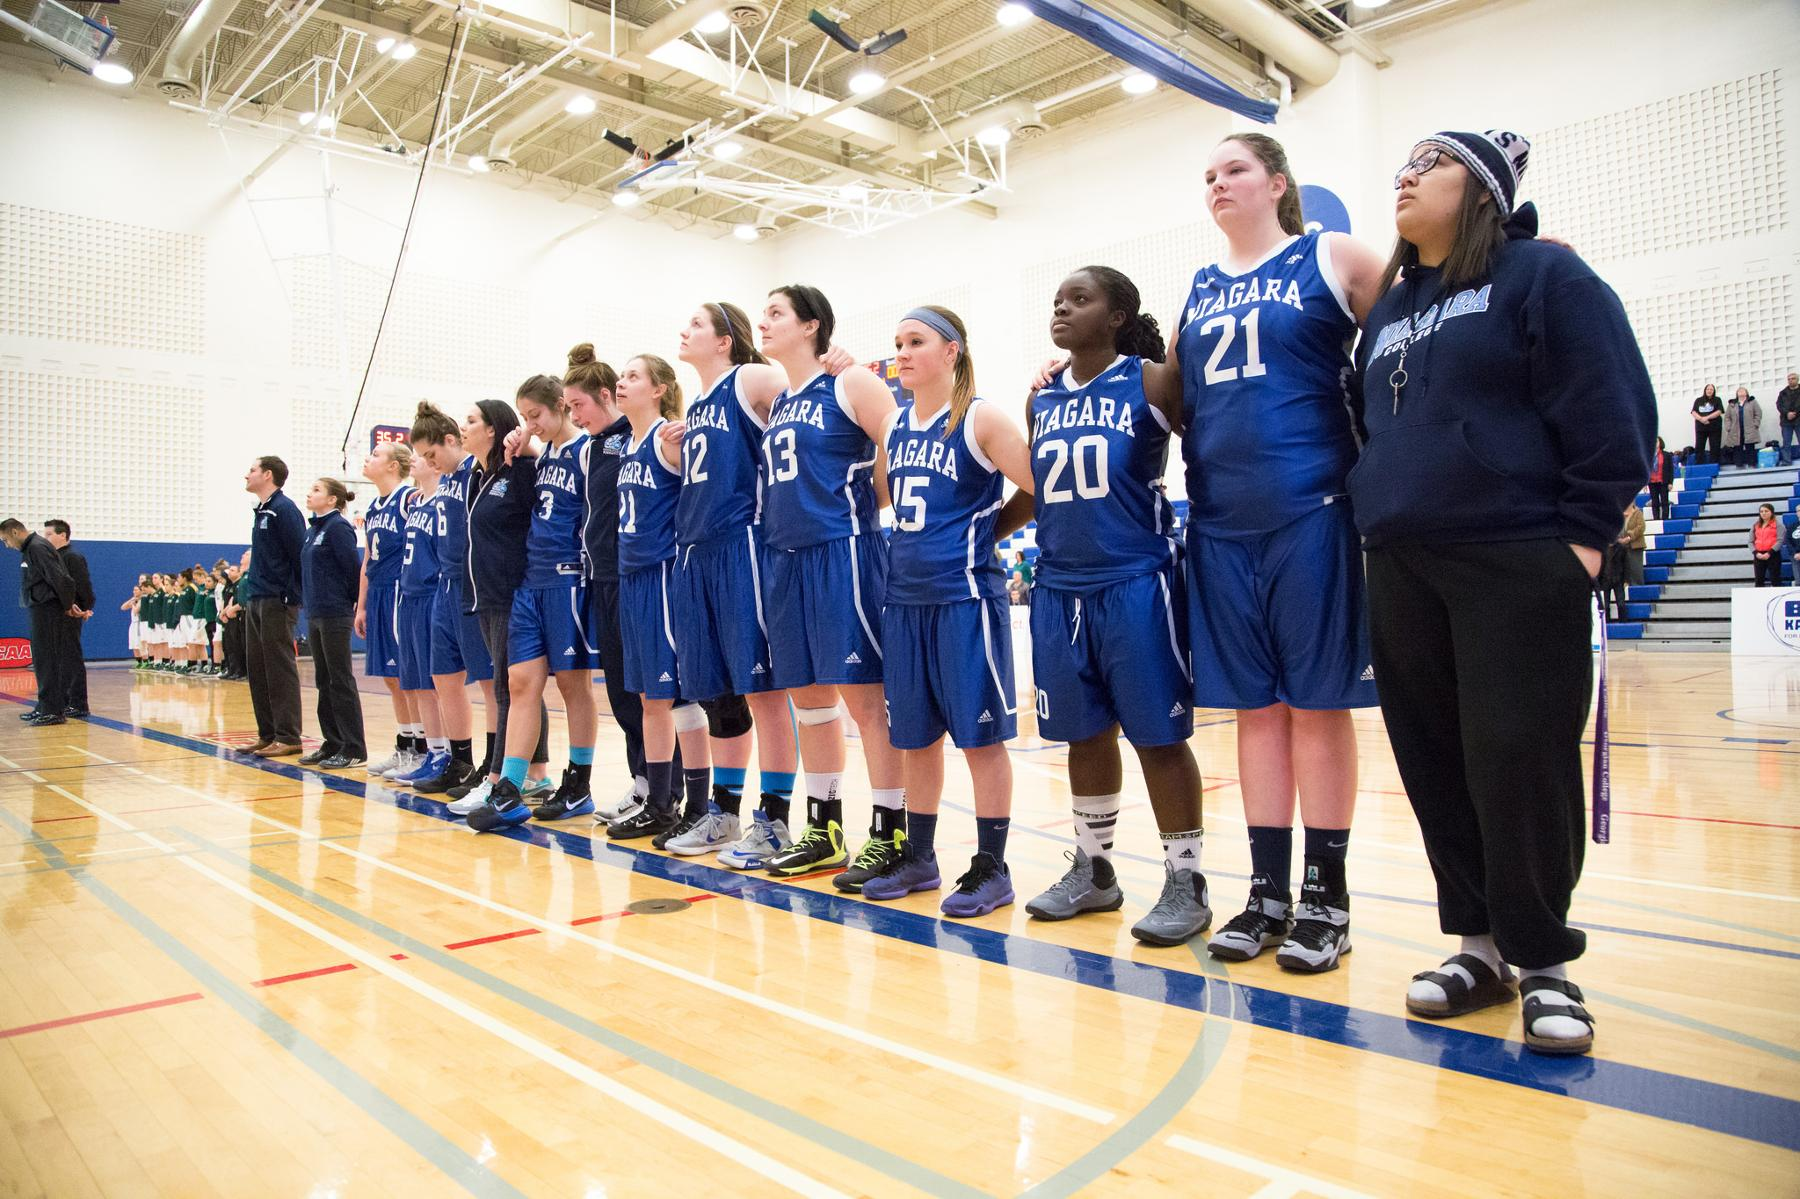 PHOTOS: Consolation Final - Niagara Knights vs. St. Clair Saints